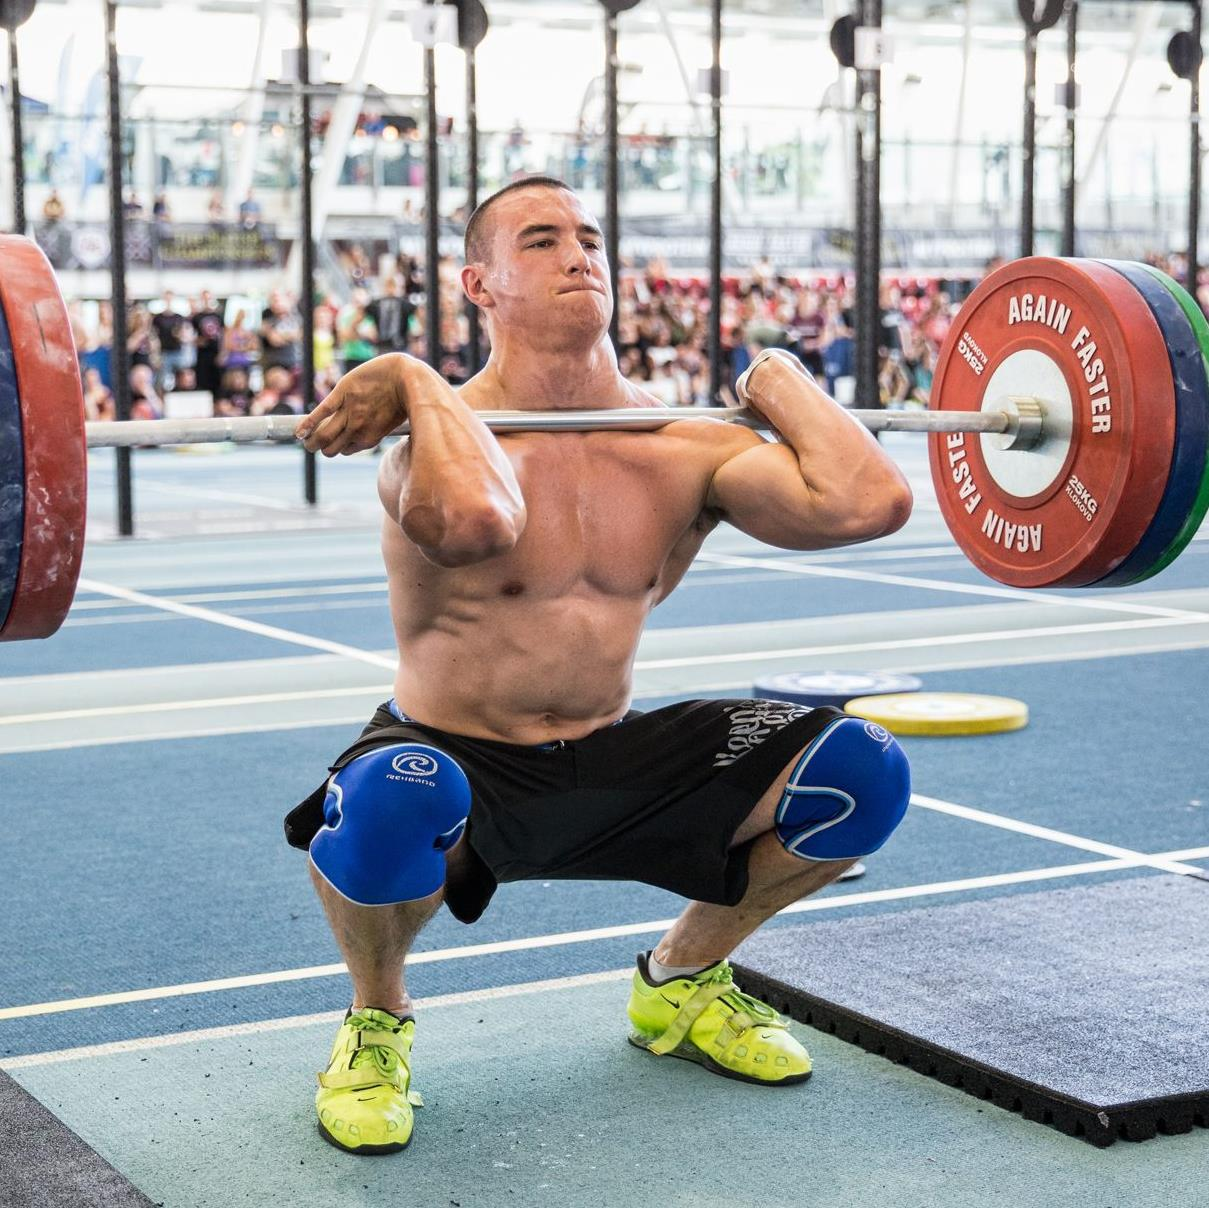 Liam Houlton - Liam started CF in 2012, after finishing university with an undergrad in Sports Therapy. He has been competing and coaching in the sport since 2013. Having competed at various local, national and European level competitions. Since finishing university, he has worked with a variety of athletes to improve their performance in CrossFit, as well as other sports. Over the years Liam has gained experience as a CrossFit coach both at CrossFit Civitas more recently at CrossFit Fort Ashton, and has attended the CF-L2 and Gymnastics courses. For the last three years he has also worked for the Ministry of Defence, programming and administering Physical Training for the military. Liam is currently studying for a masters in Strength and Conditioning.